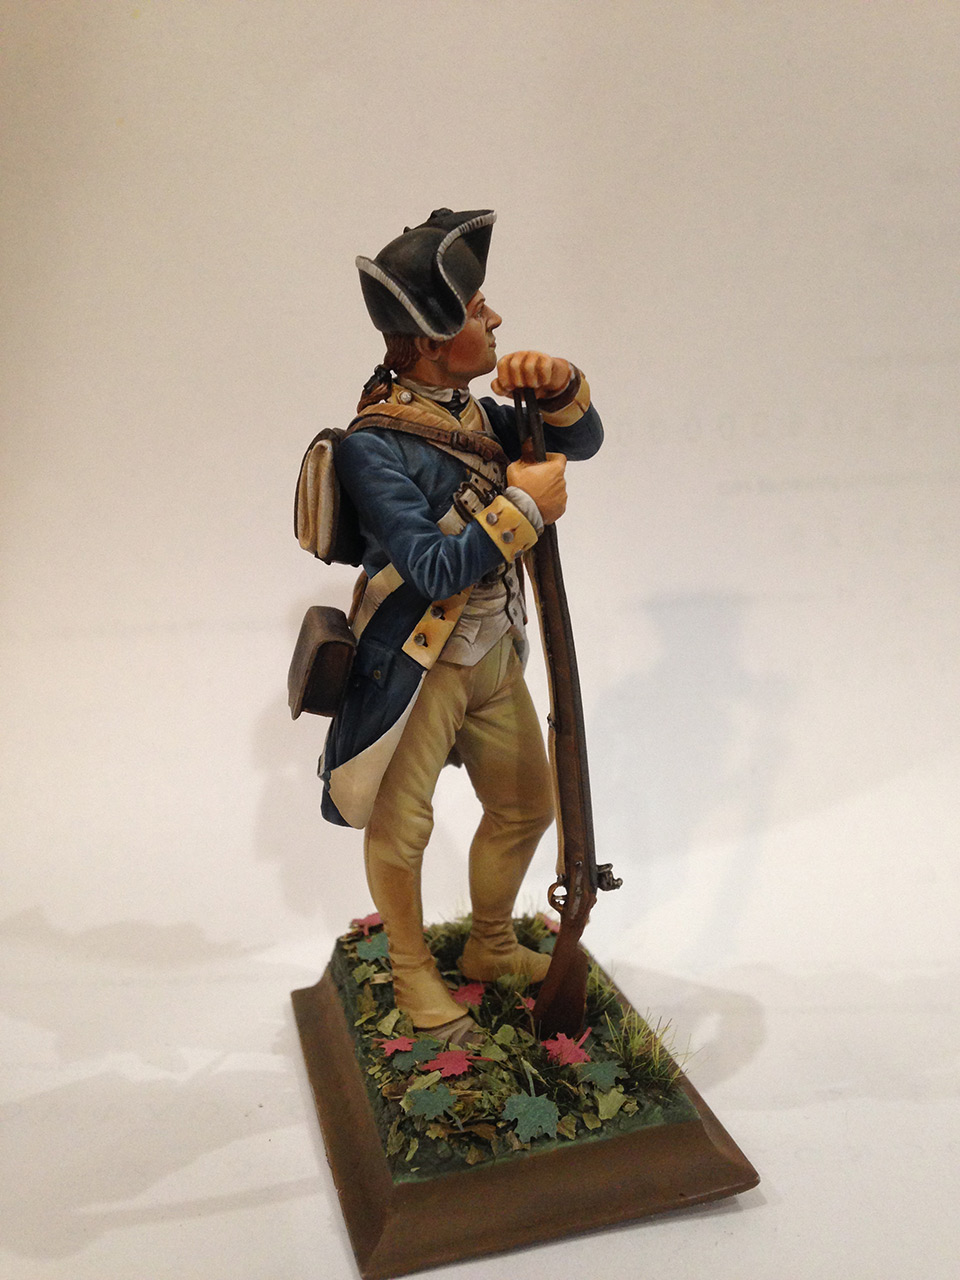 Figures: Private, 1st New York regt. of Continental Army, photo #4